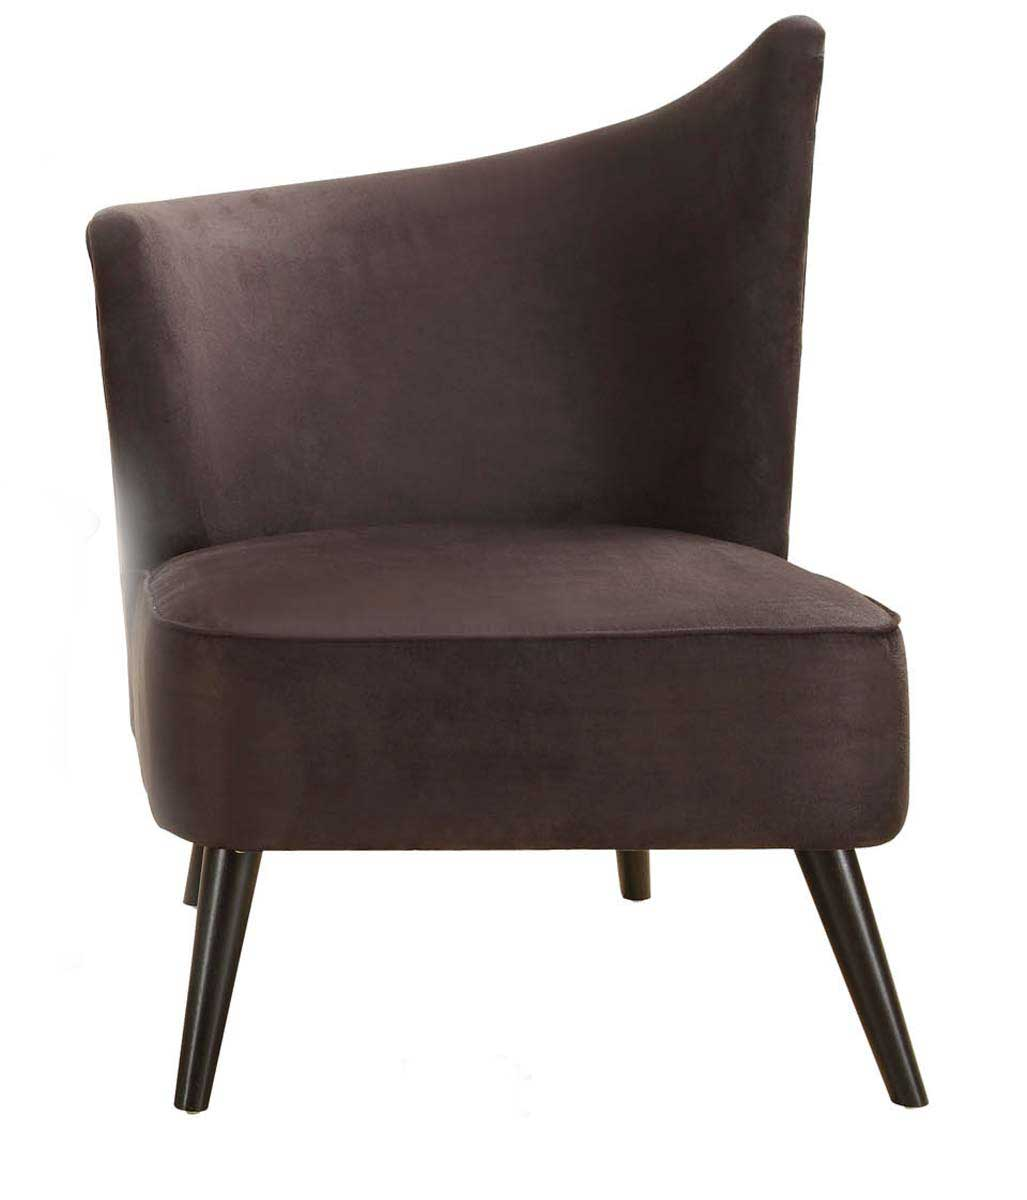 Armen Living Elegant Accent Chair - Black